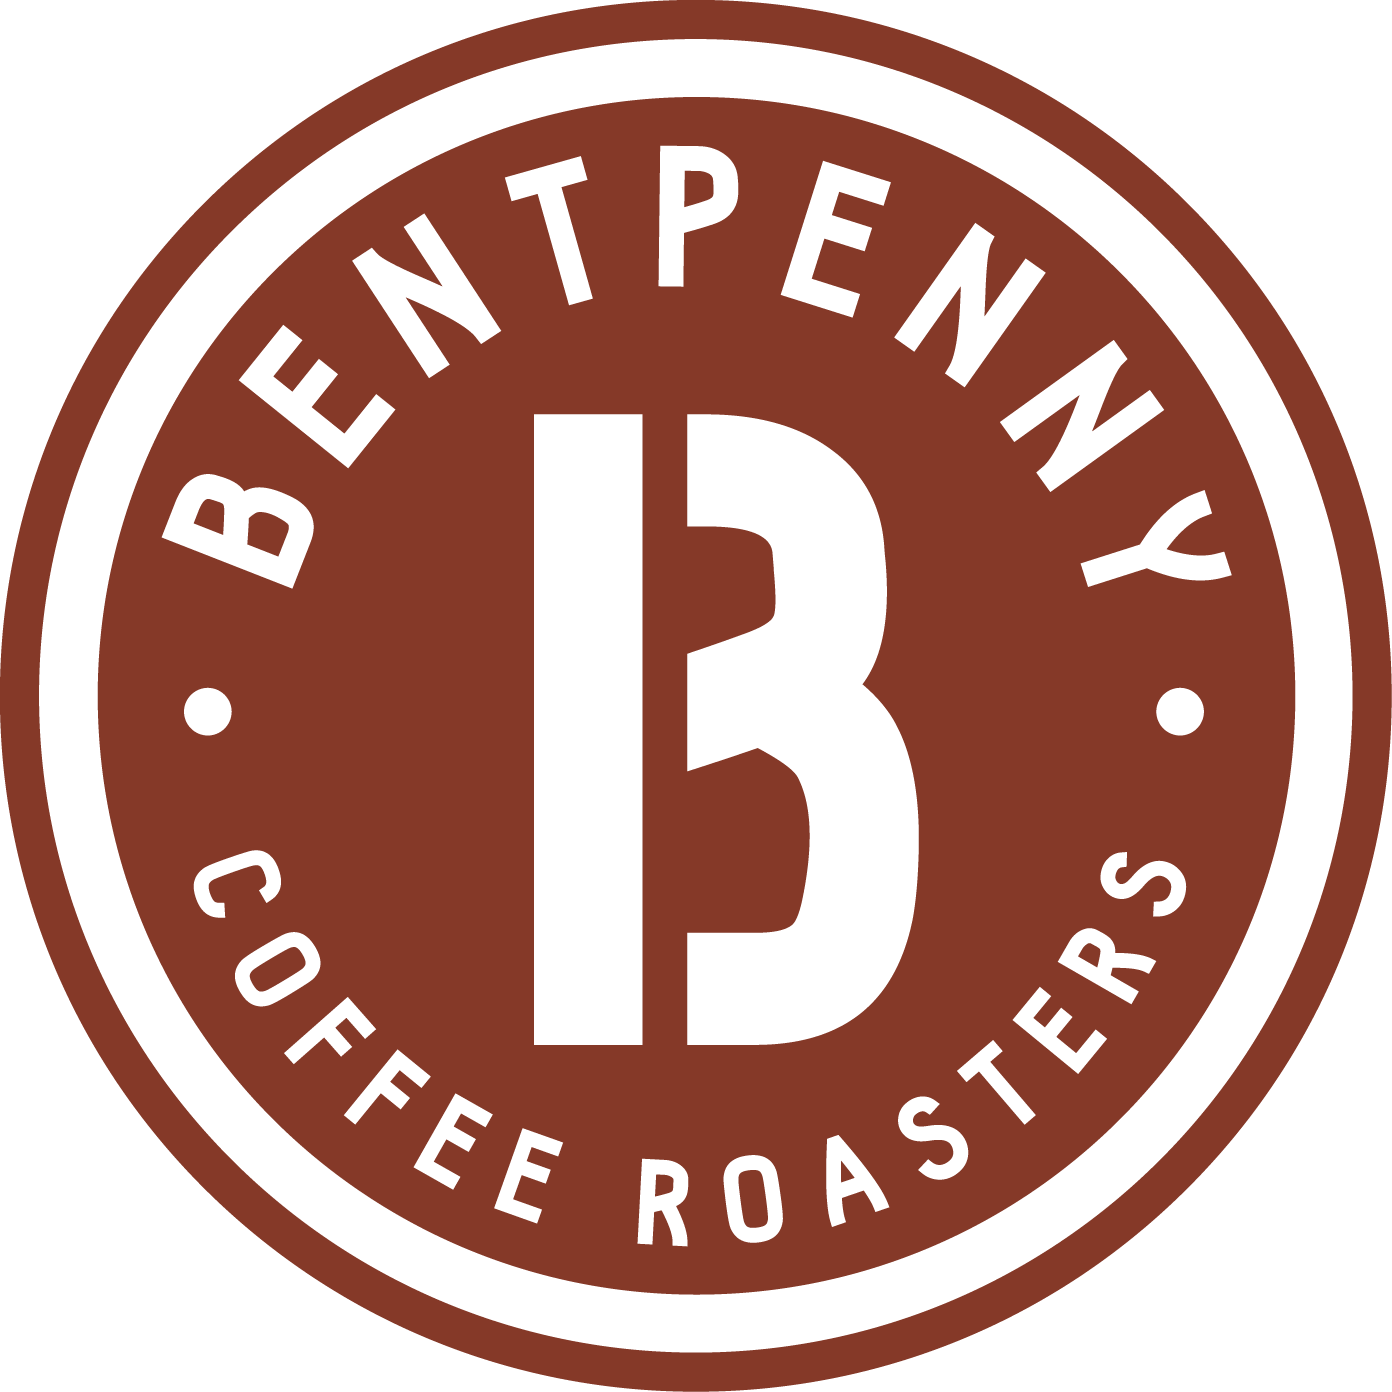 BentPenny Coffee Roasters